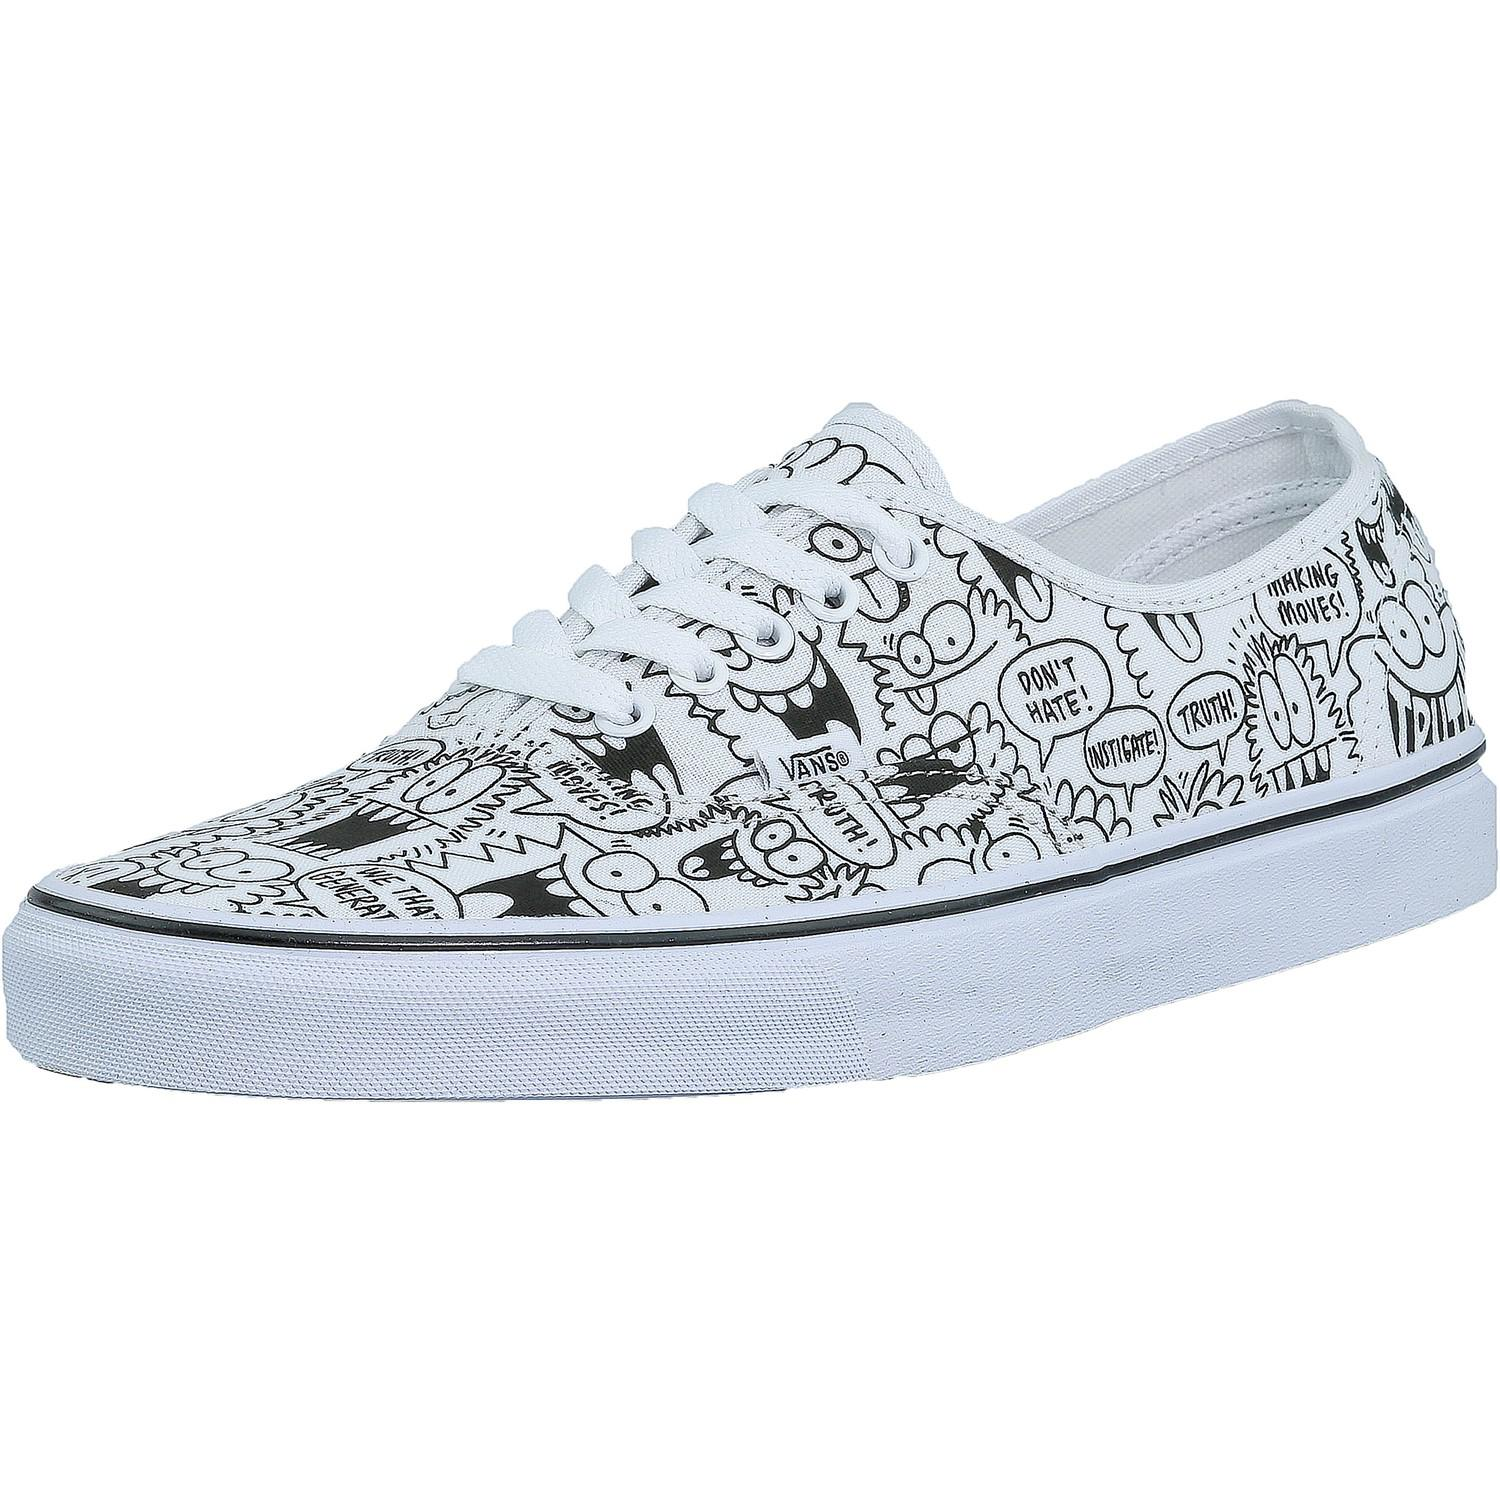 64945a7140 Lyst - Vans Authentic Truth And Kevin Lyons Ankle-high Canvas ...